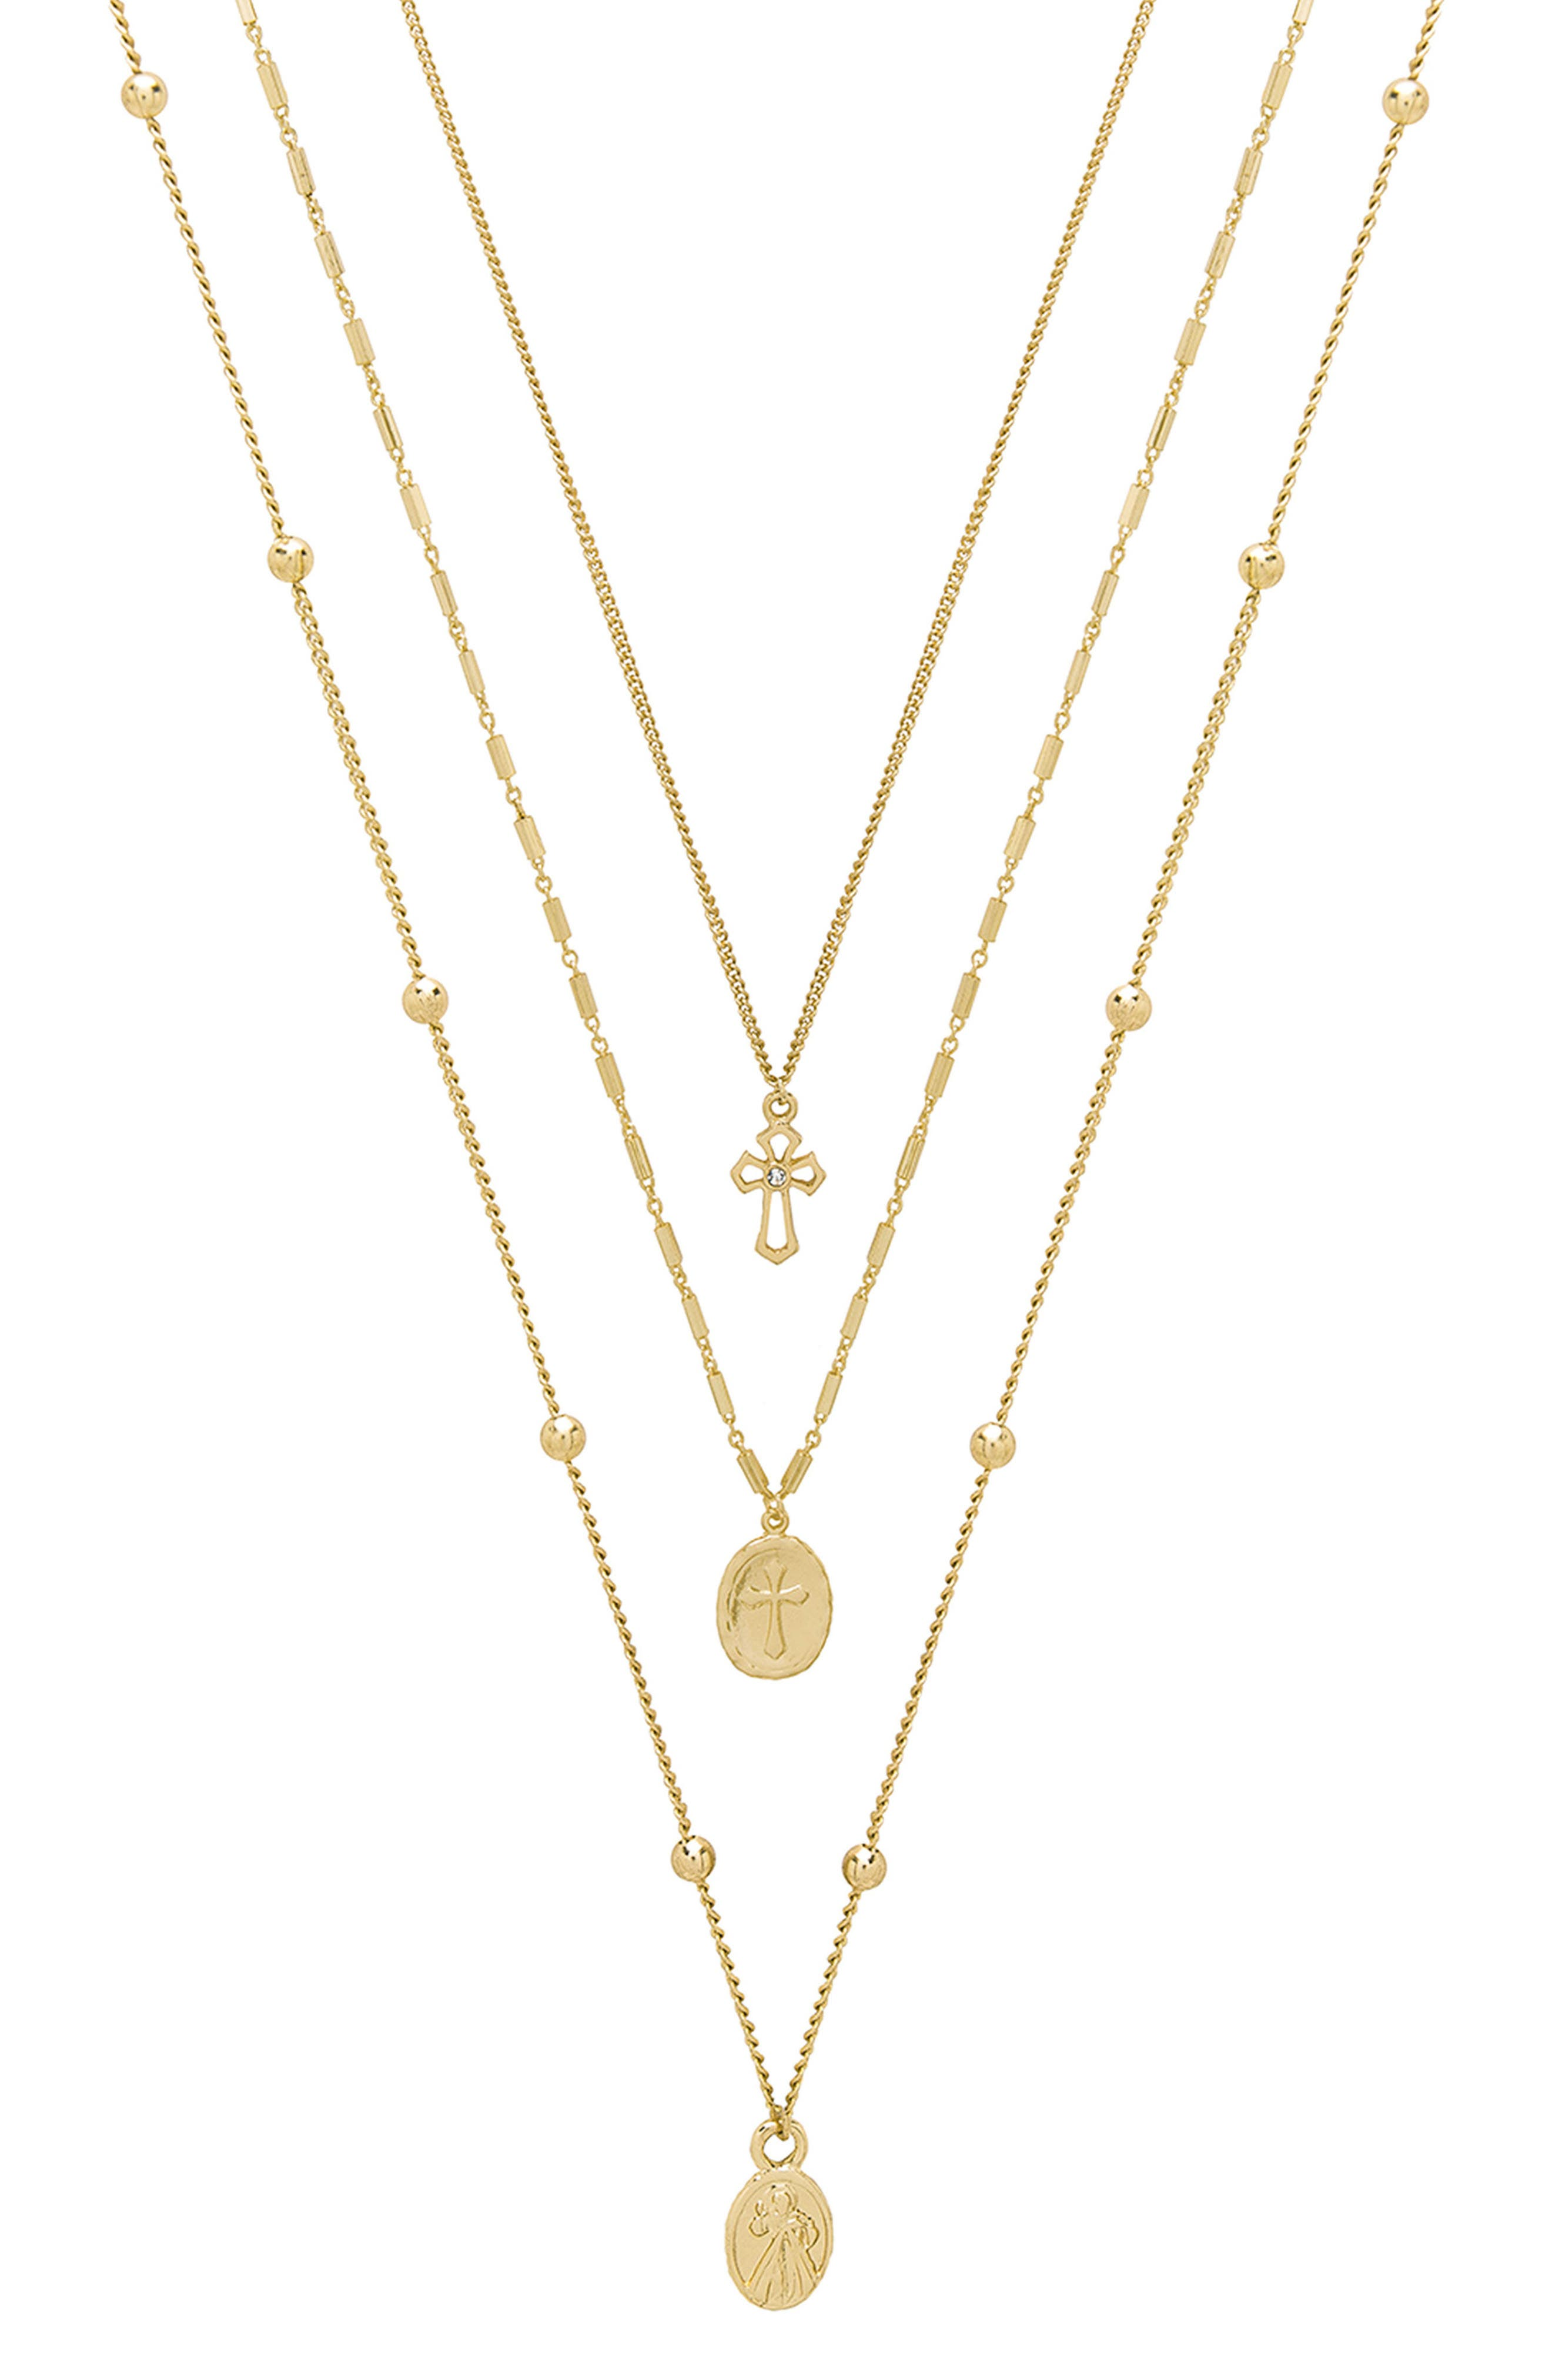 Set of 3 Cross Necklaces,                         Main,                         color, Gold